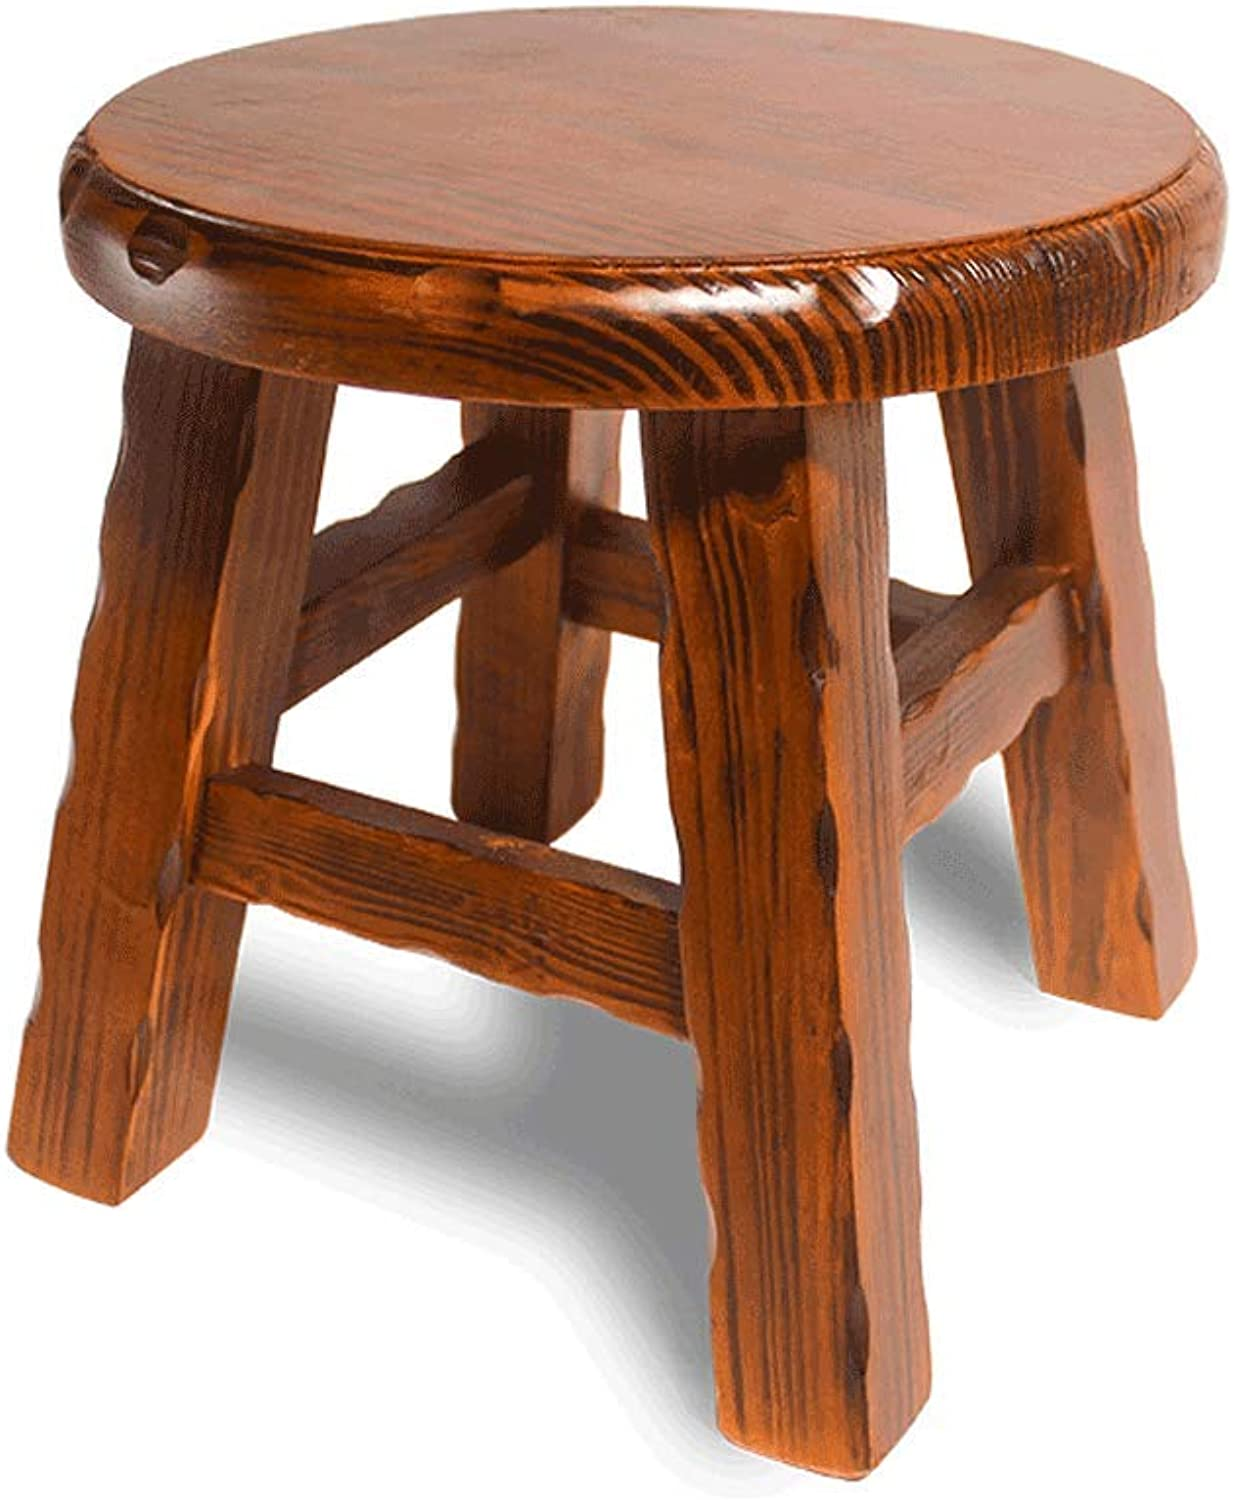 Round Solid Wood Stool, Sleek Minimalist Living Room Coffee Table Home Adult Replacement shoes Small Bench